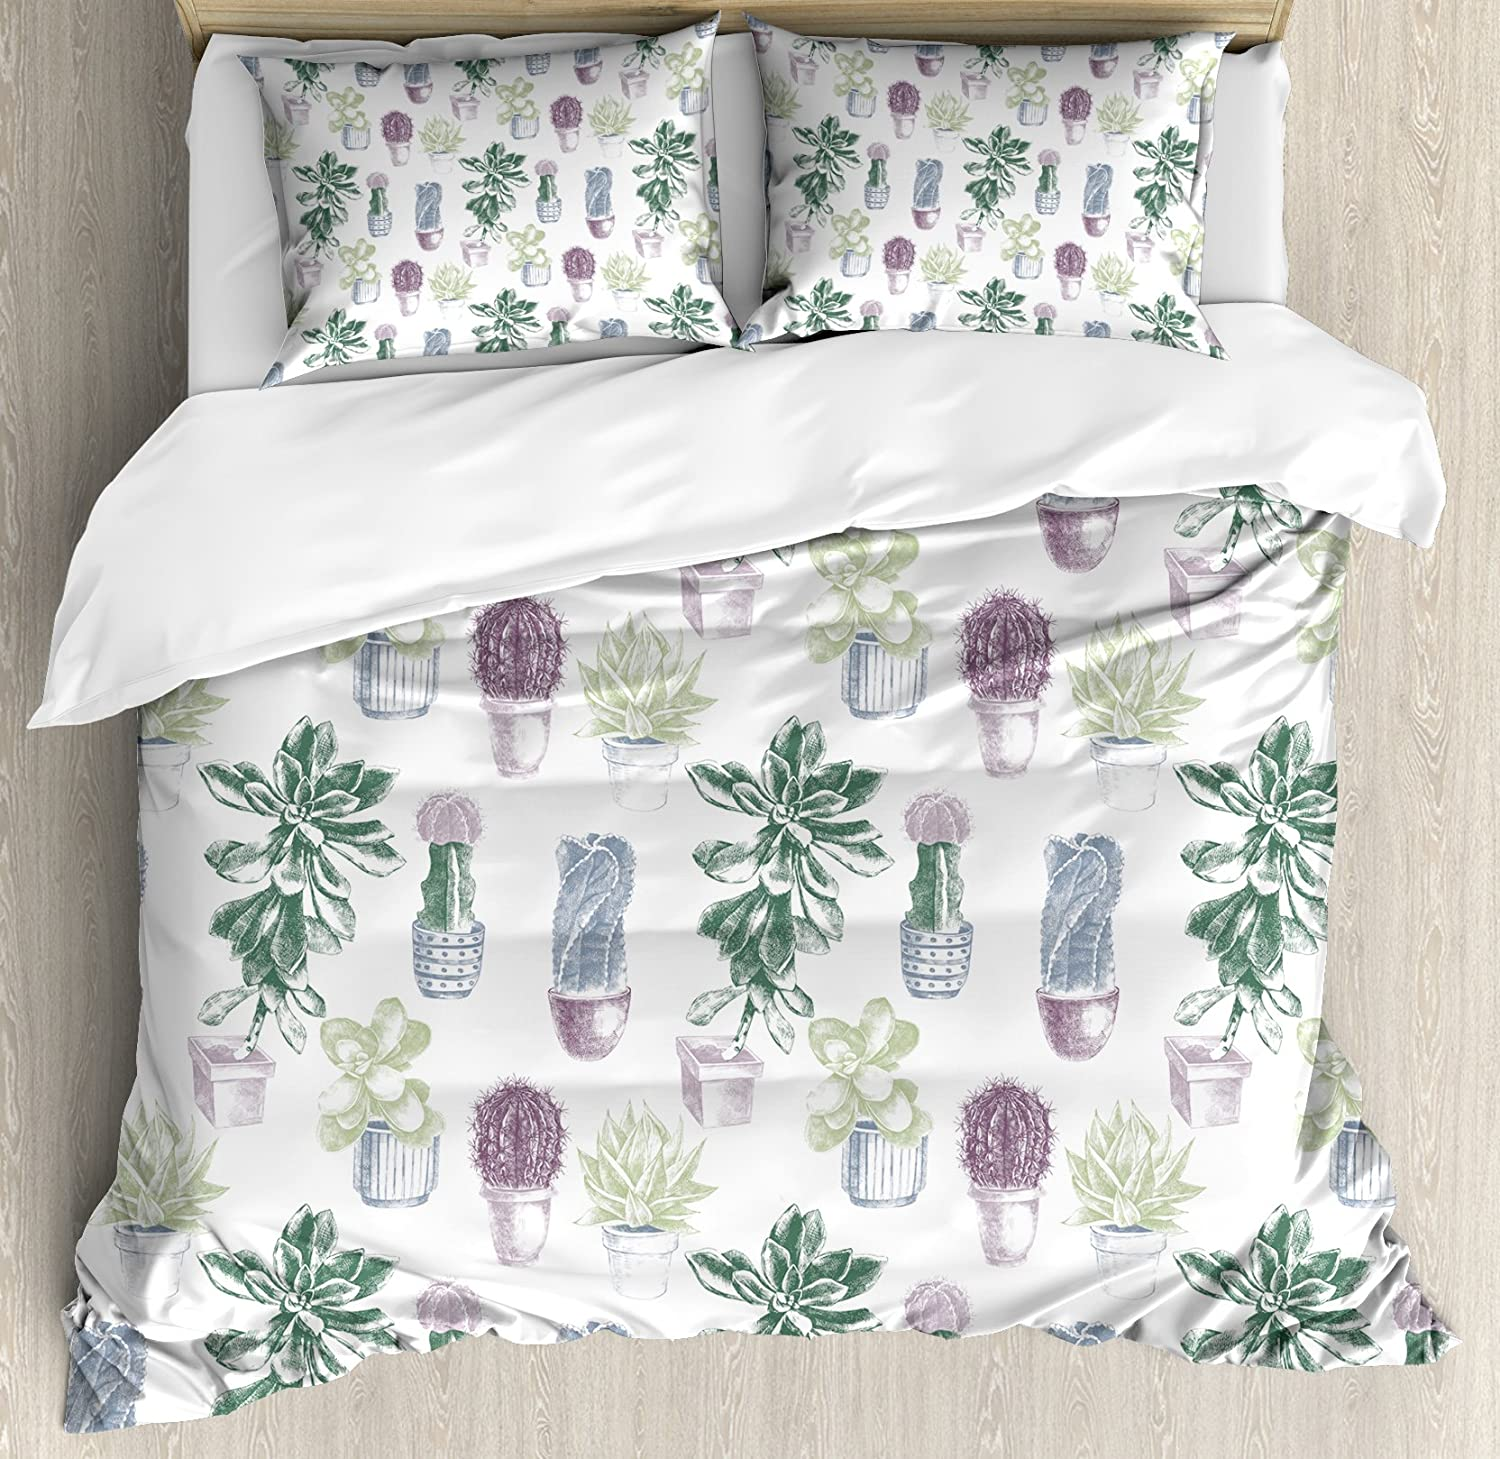 Ambesonne Cactus Duvet Cover Set, Mexican Local Plants Succulents Indigenous Foliage in Flowerpots Domestic Flora Art, Decorative 3 Piece Bedding Set with 2 Pillow Shams, King Size, Dark Lavender